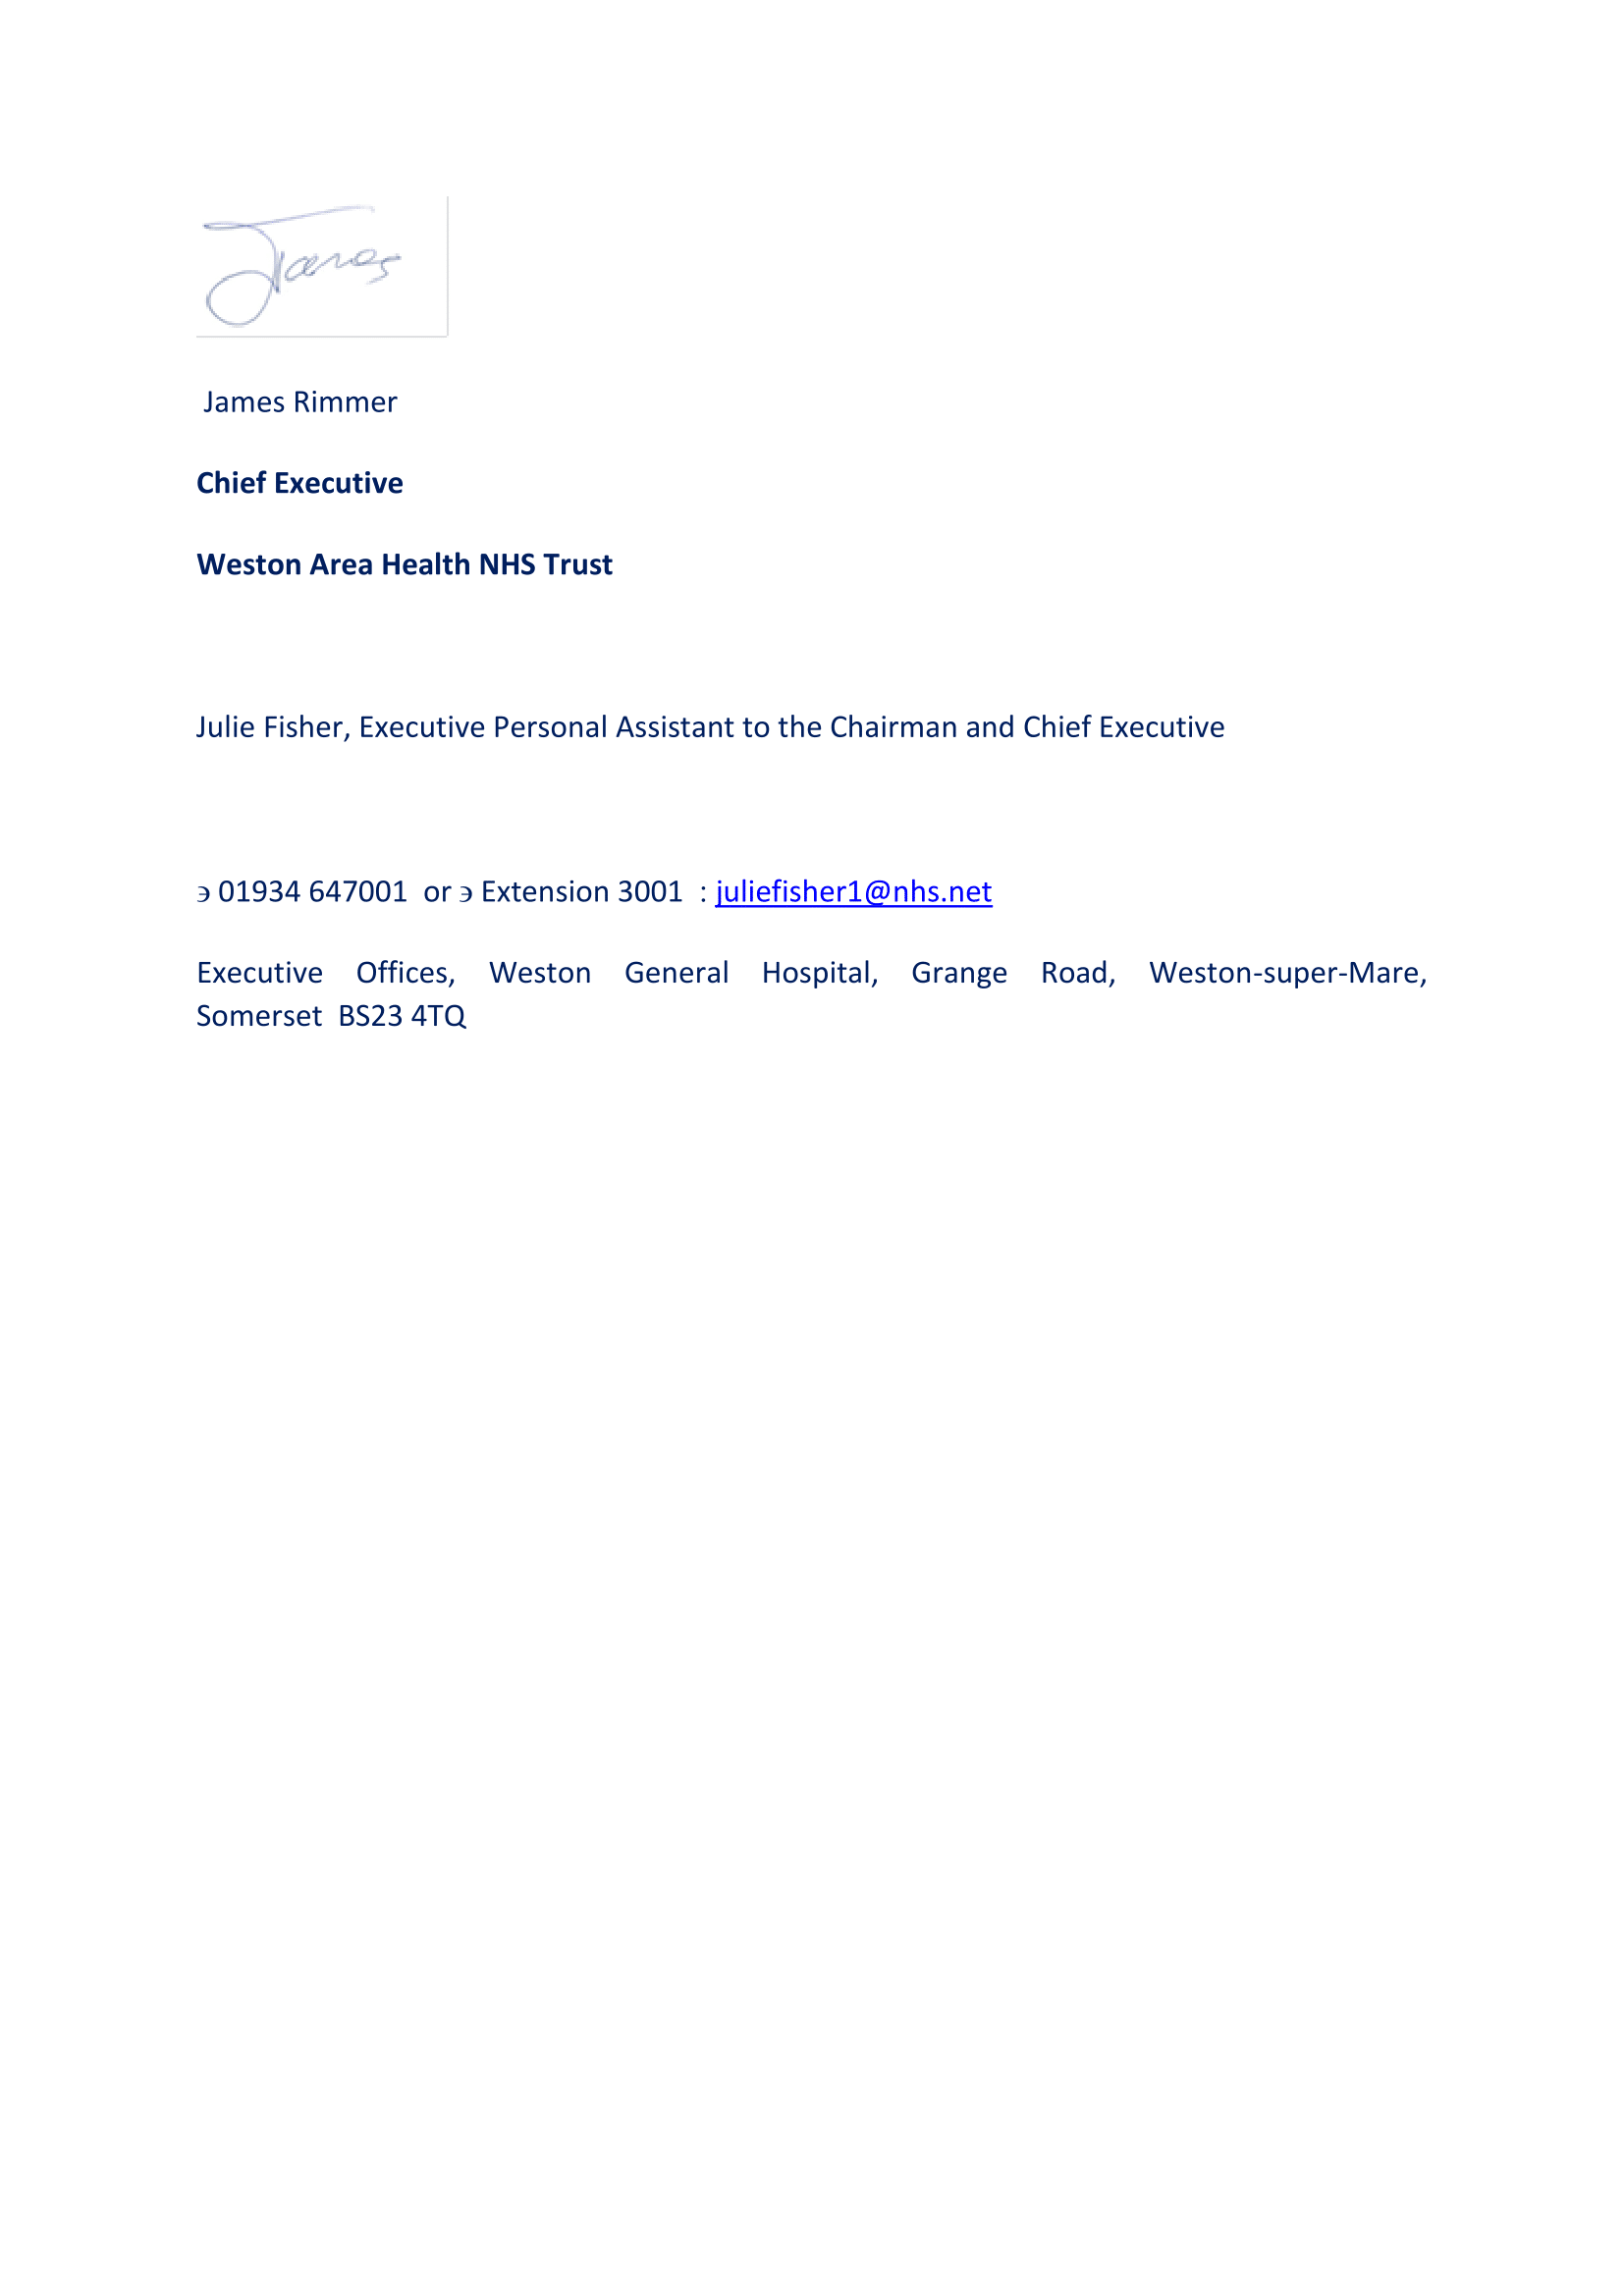 20170613_Accident_and_Emergency_closure_letter-3.png